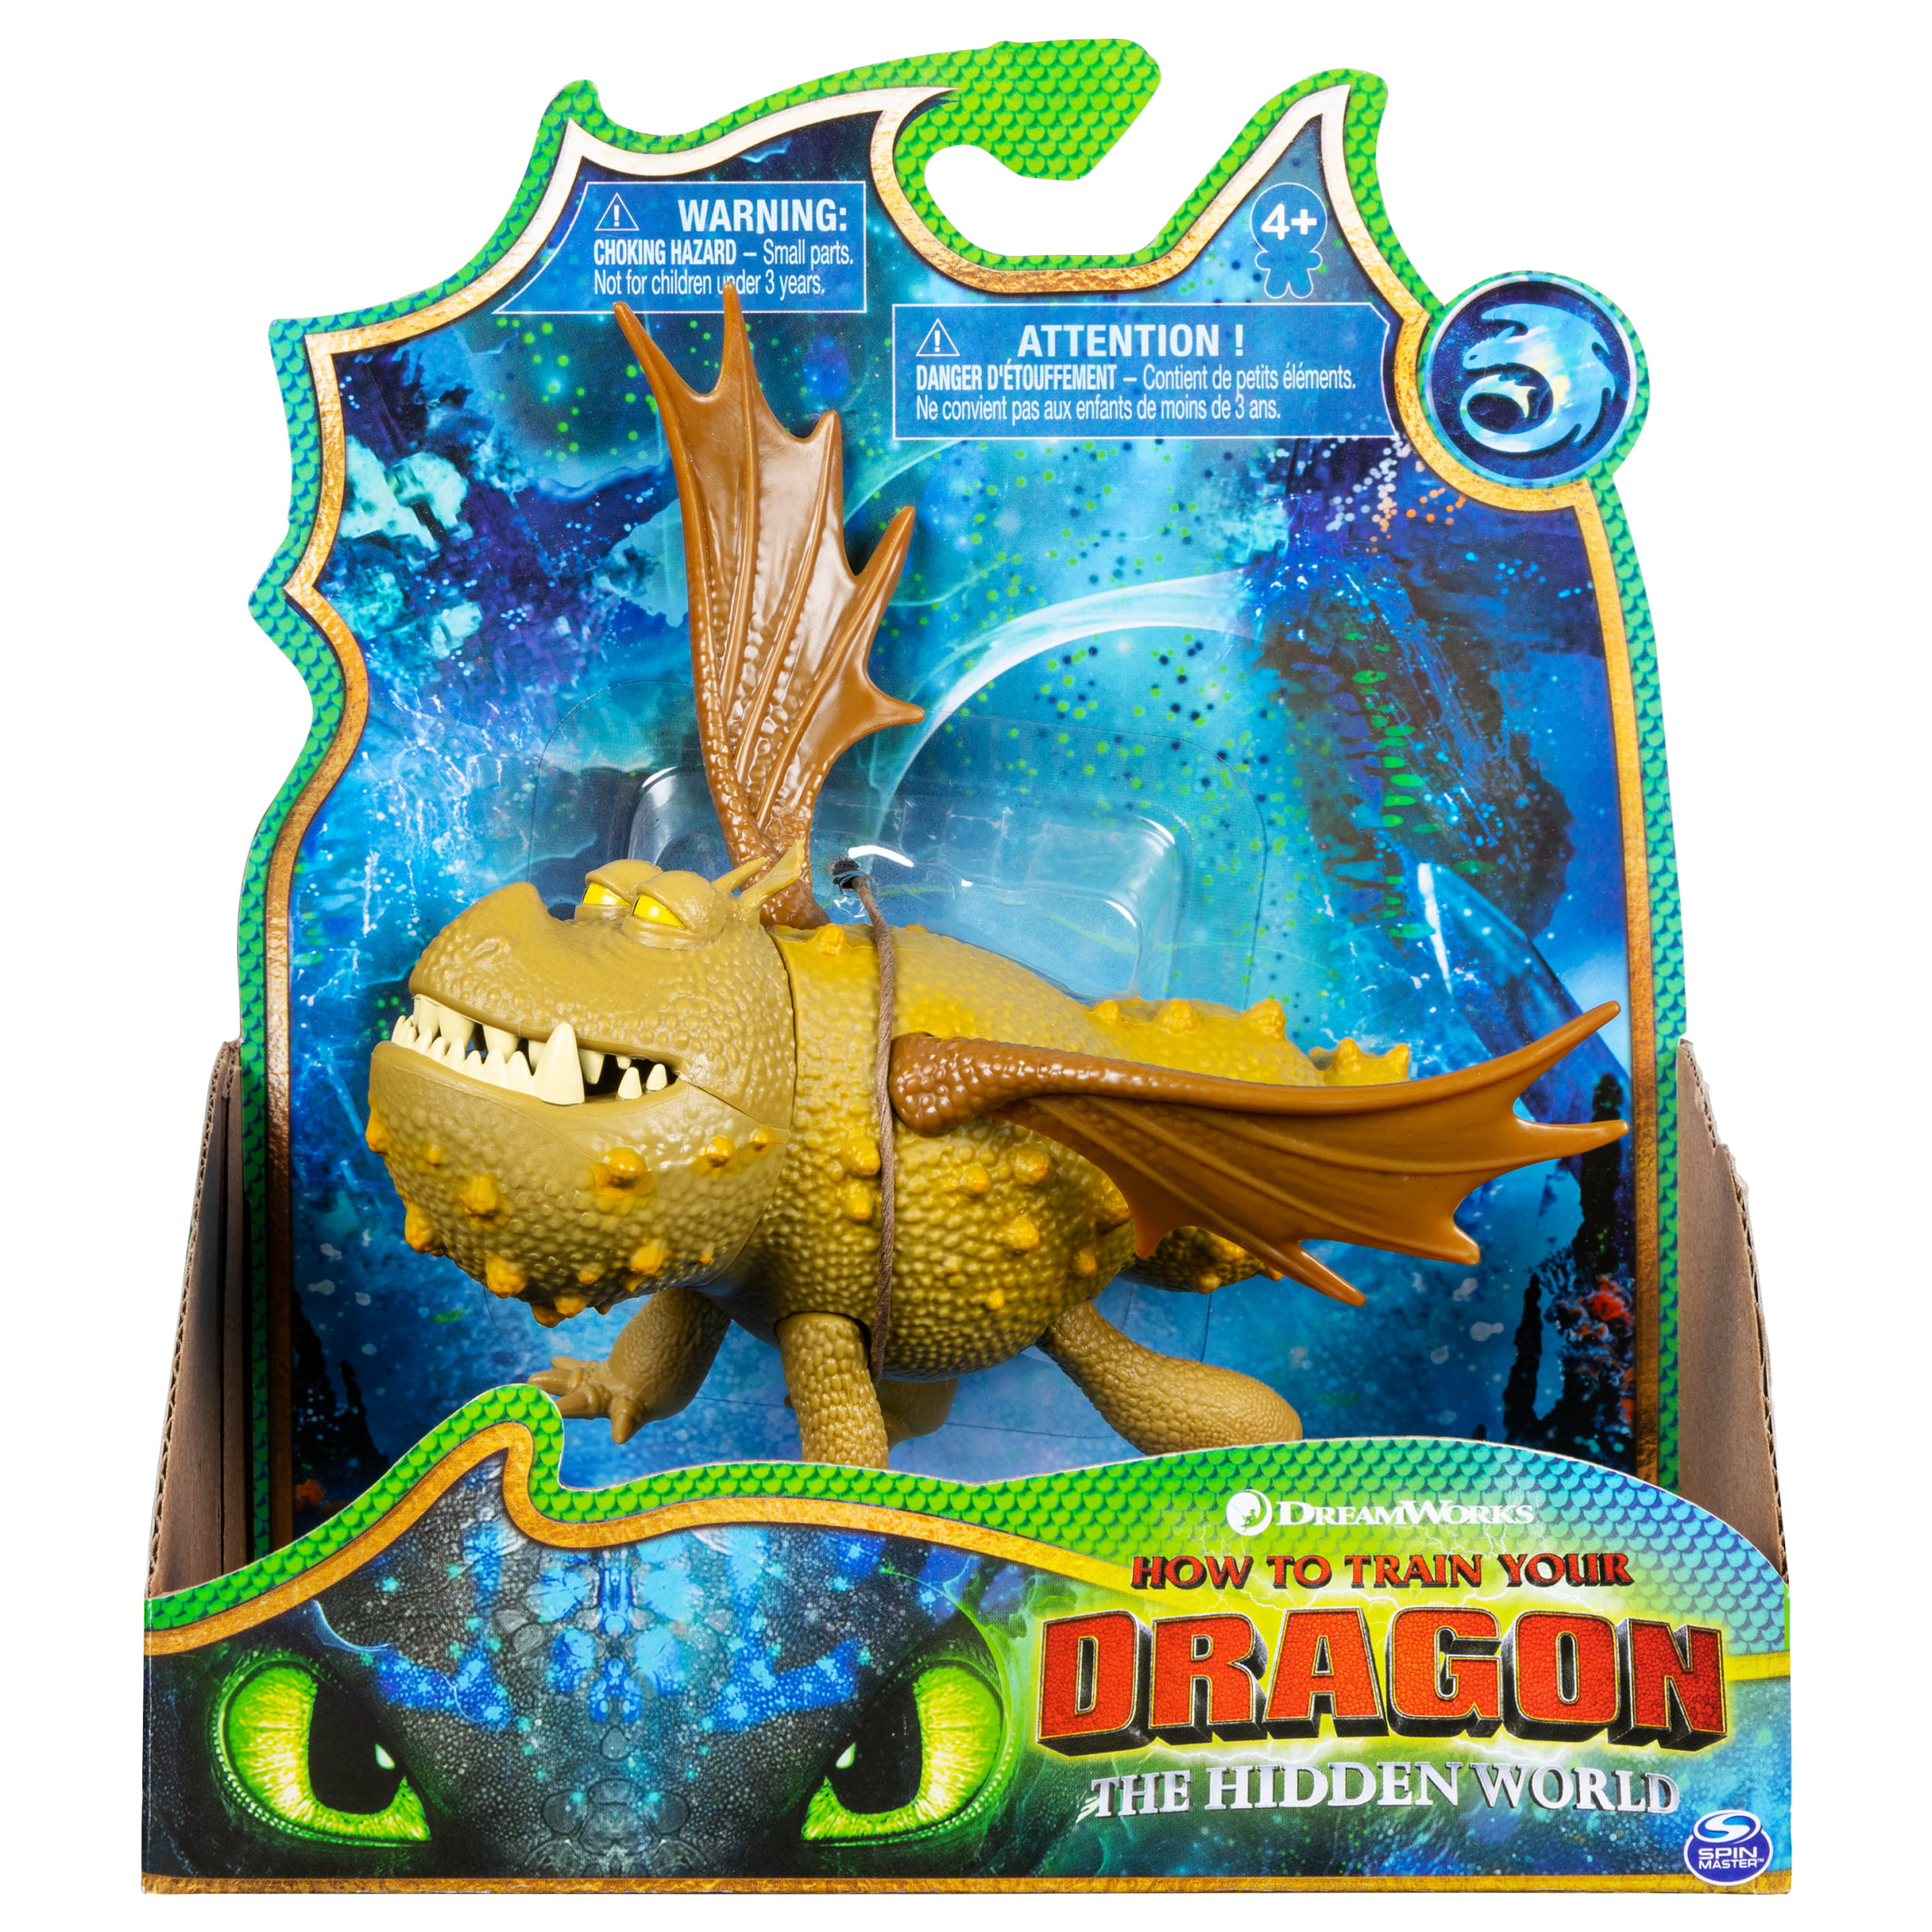 DreamWorks Dragons Meatlug Dragon Figure with Moving Parts